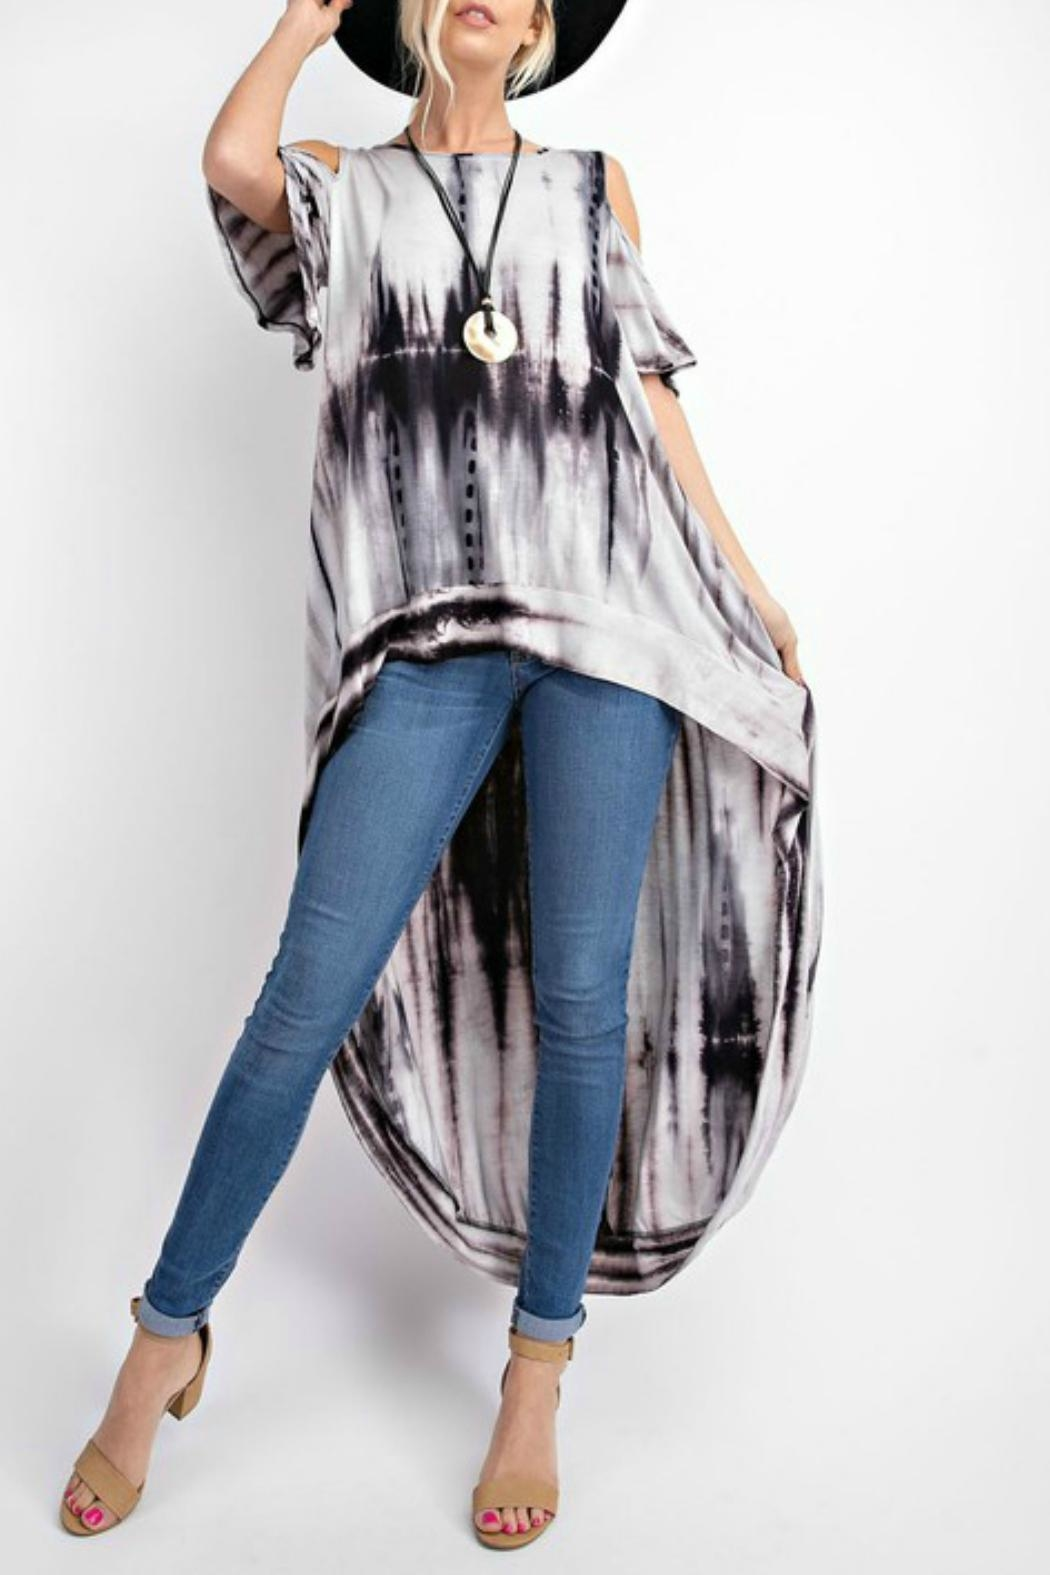 RAE MODE Tie-Dye Knit Top - Front Full Image